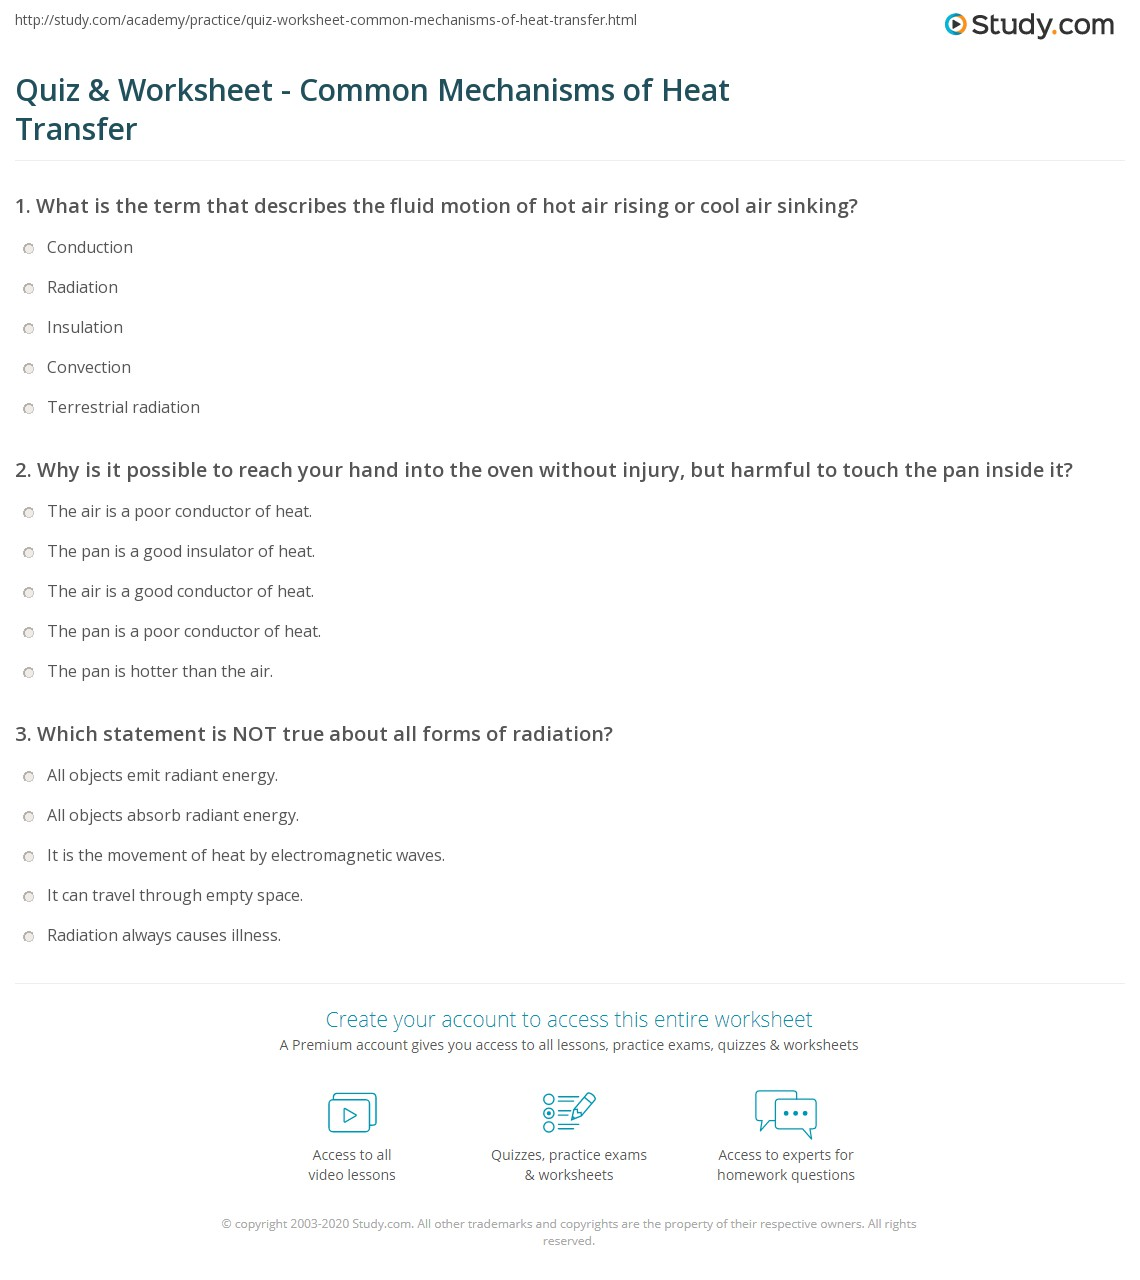 Quiz & Worksheet - Common Mechanisms of Heat Transfer | Study.com